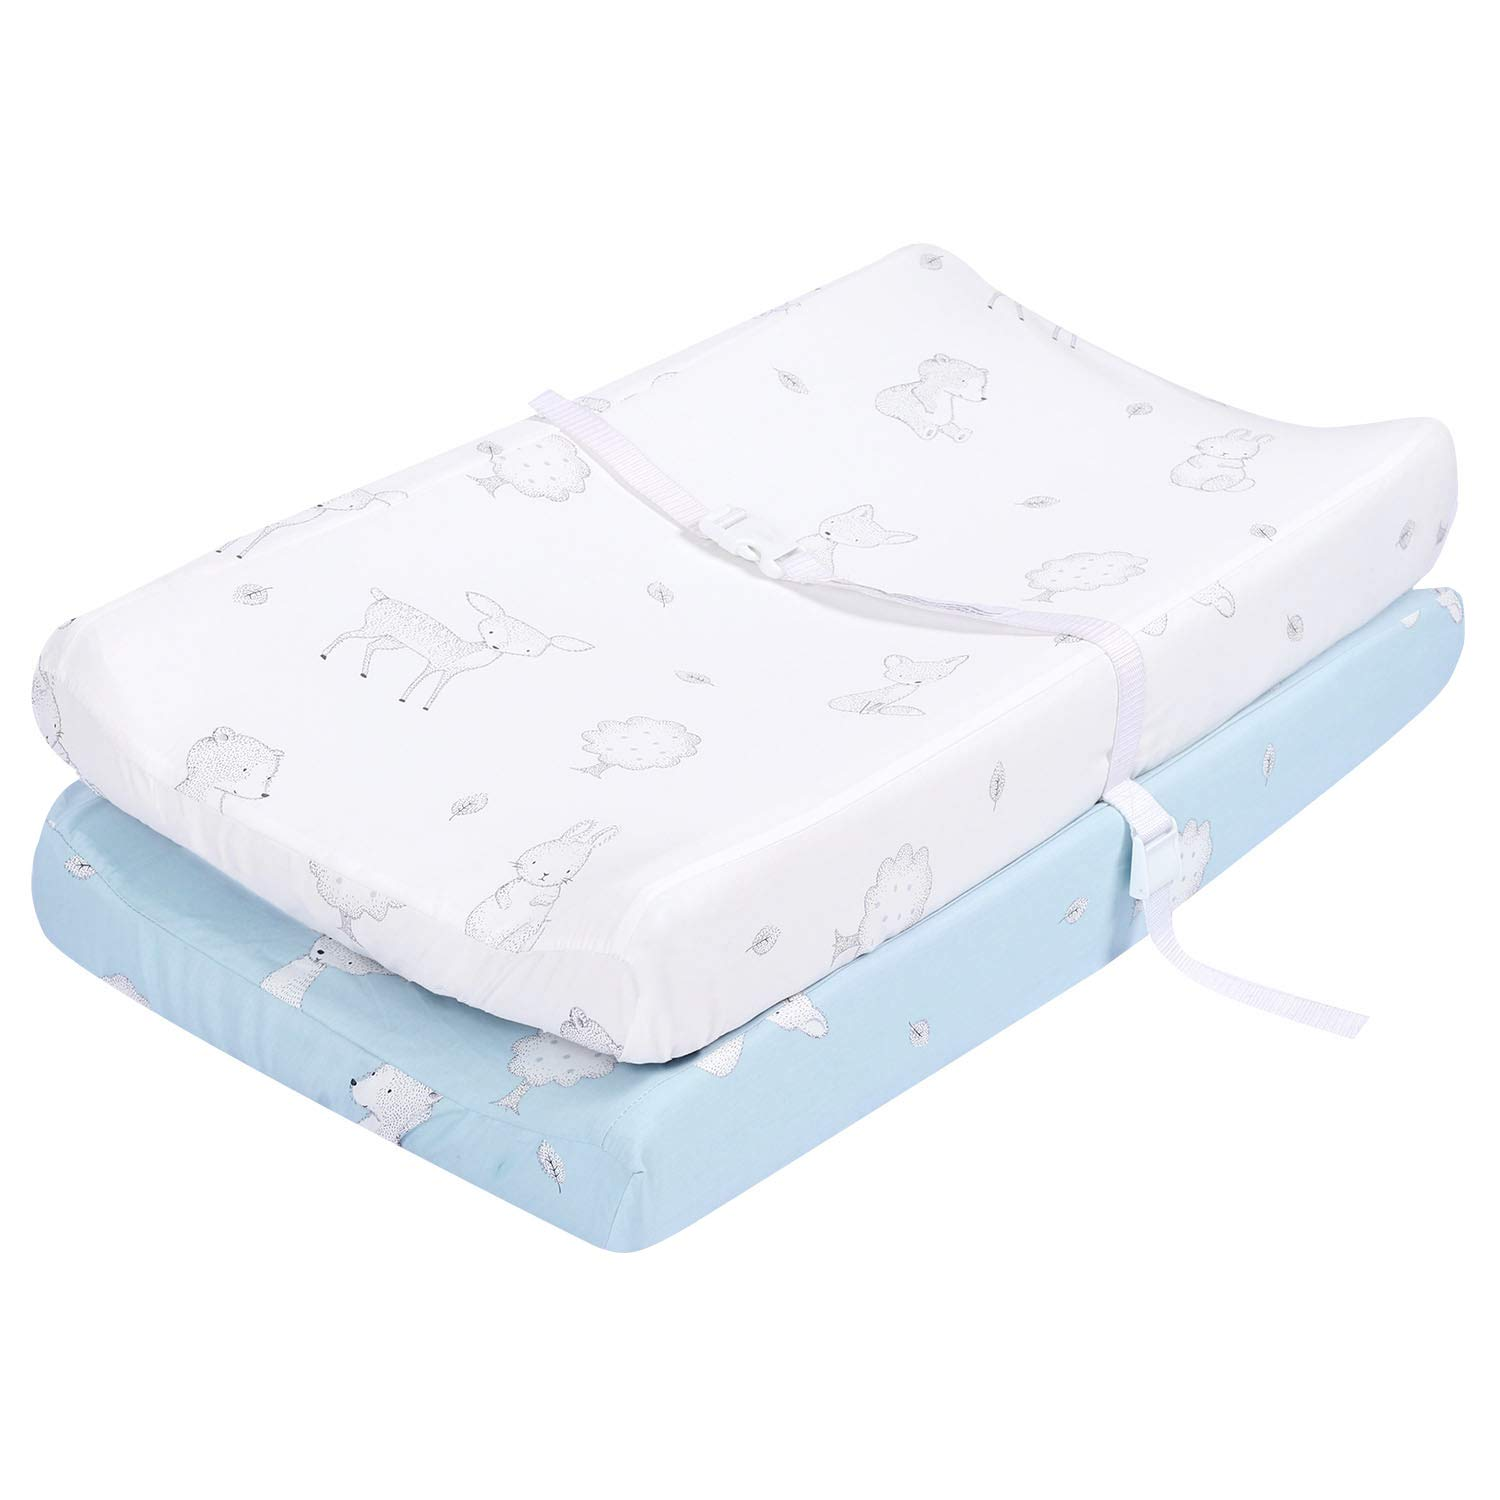 TILLYOU Bamboo Changing Pad Covers Woodland-Luxury Cradle Sheet Unisex Baby Changing Table Sheets-32''x16''-Ultra Soft Cozy Hypoallergenic, 2 Pack Fairy Messenger (Blue & White) by TILLYOU